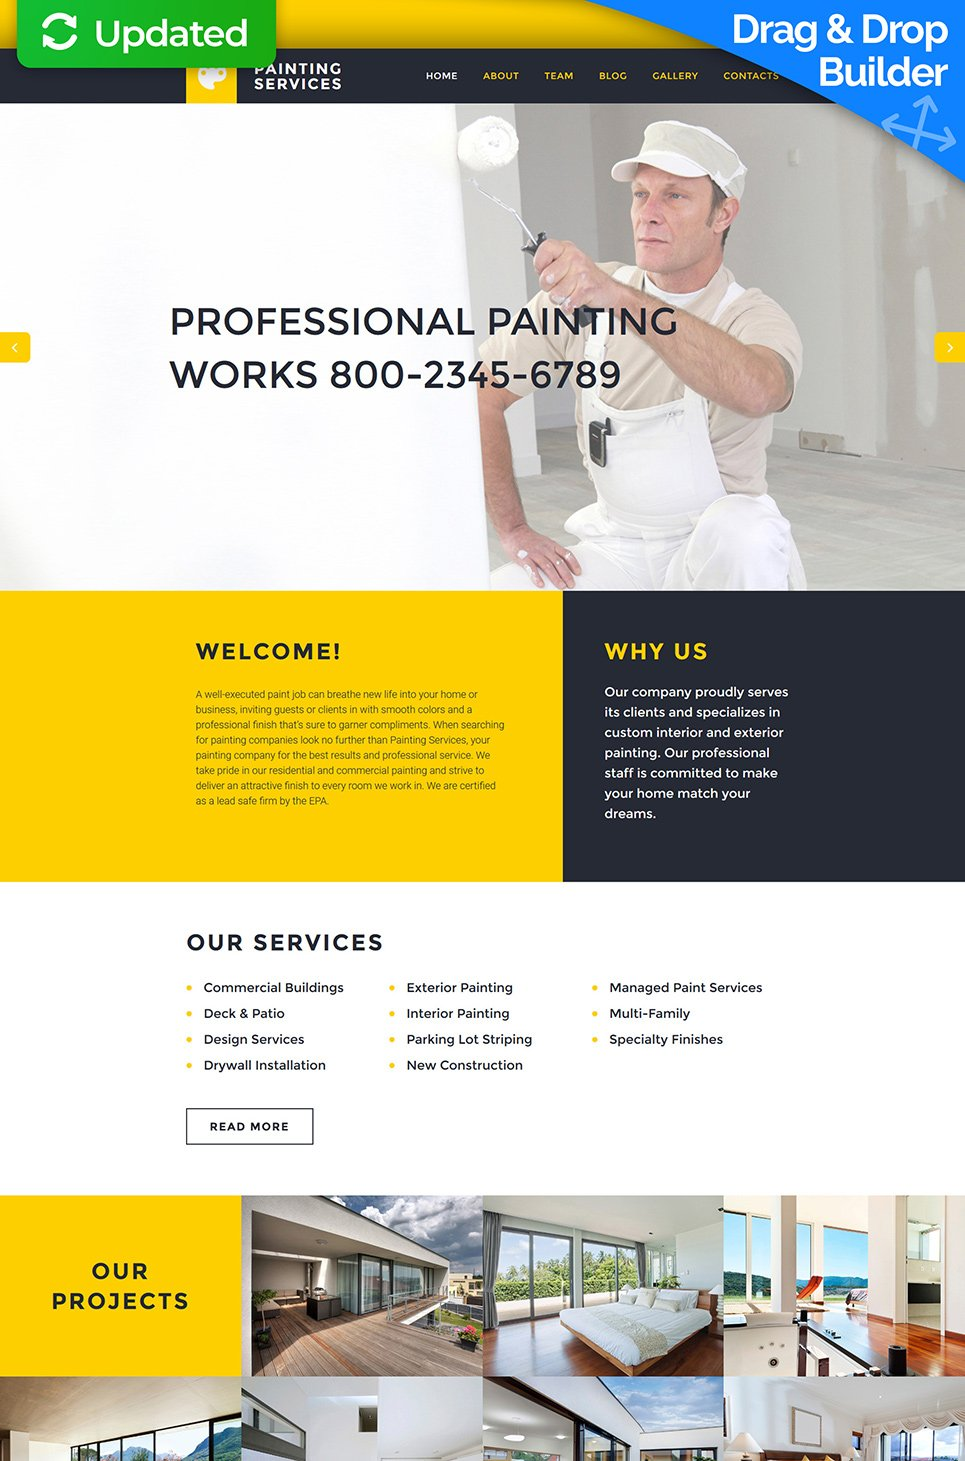 Painting Services Responsive Website Template - image